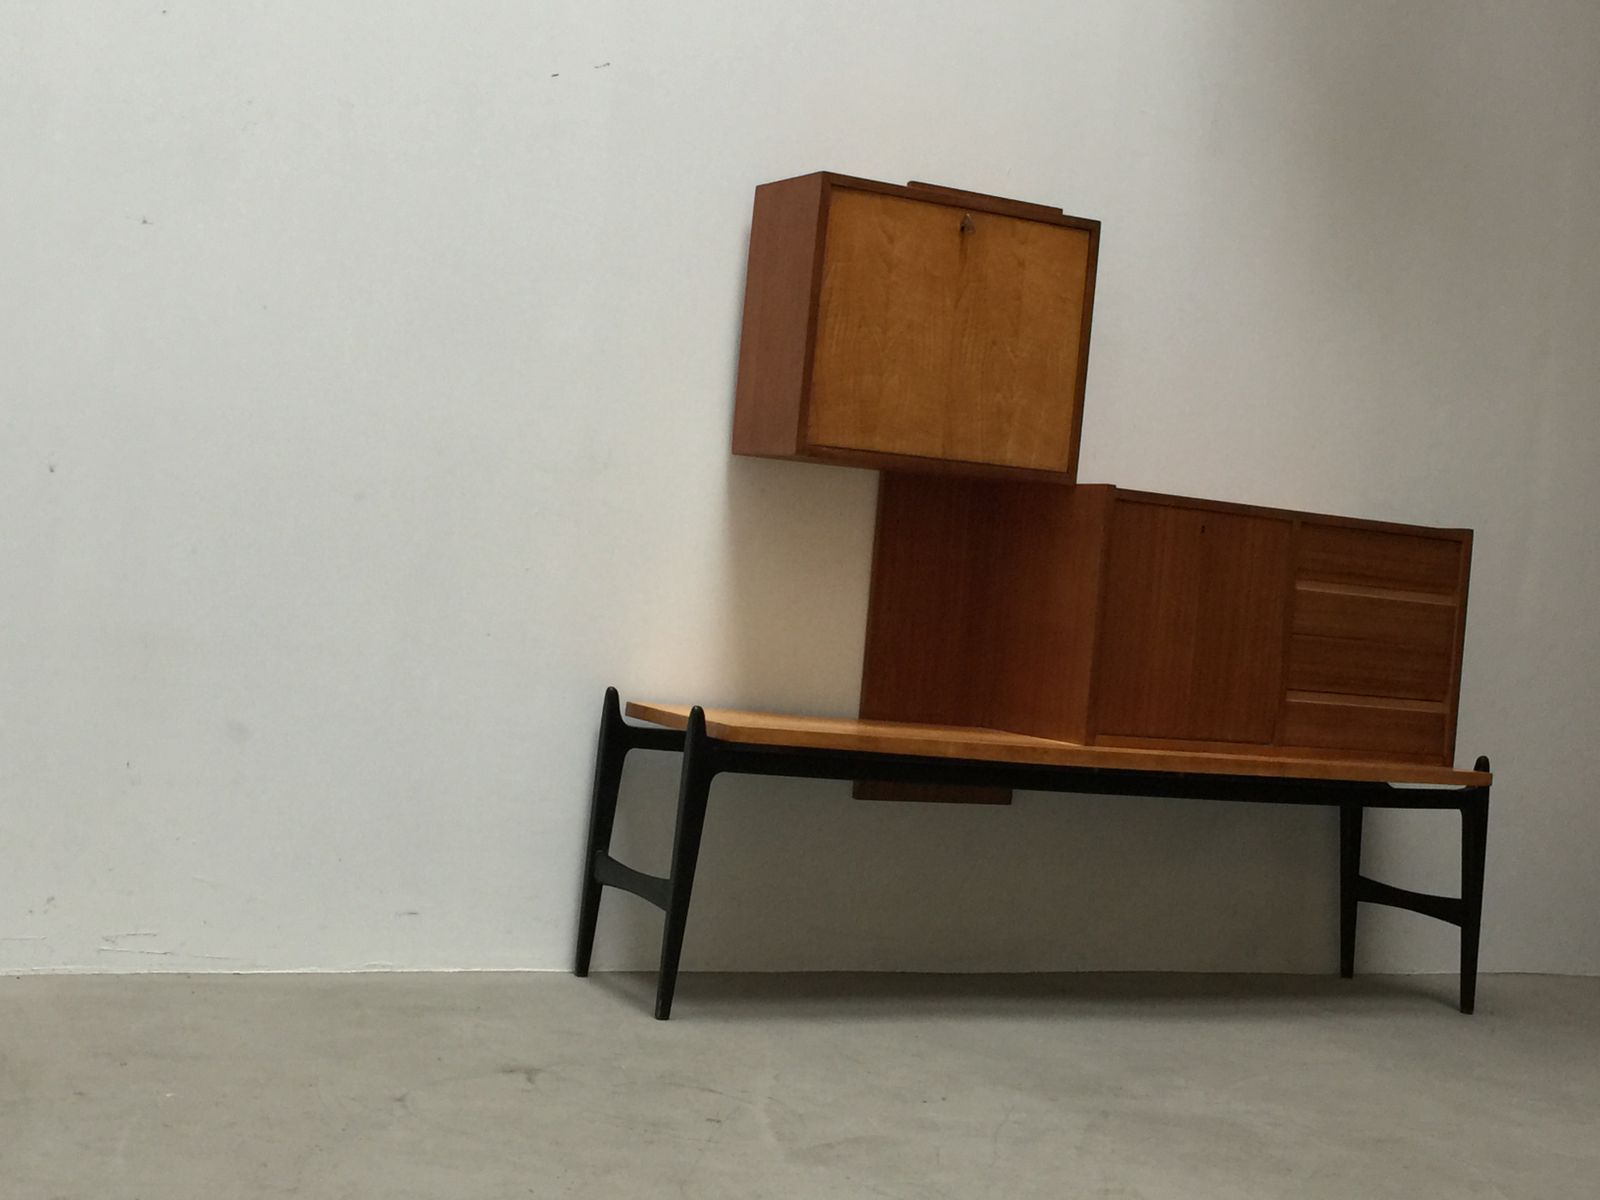 barschrank von jos de mey f r luxus 1950er bei pamono kaufen. Black Bedroom Furniture Sets. Home Design Ideas